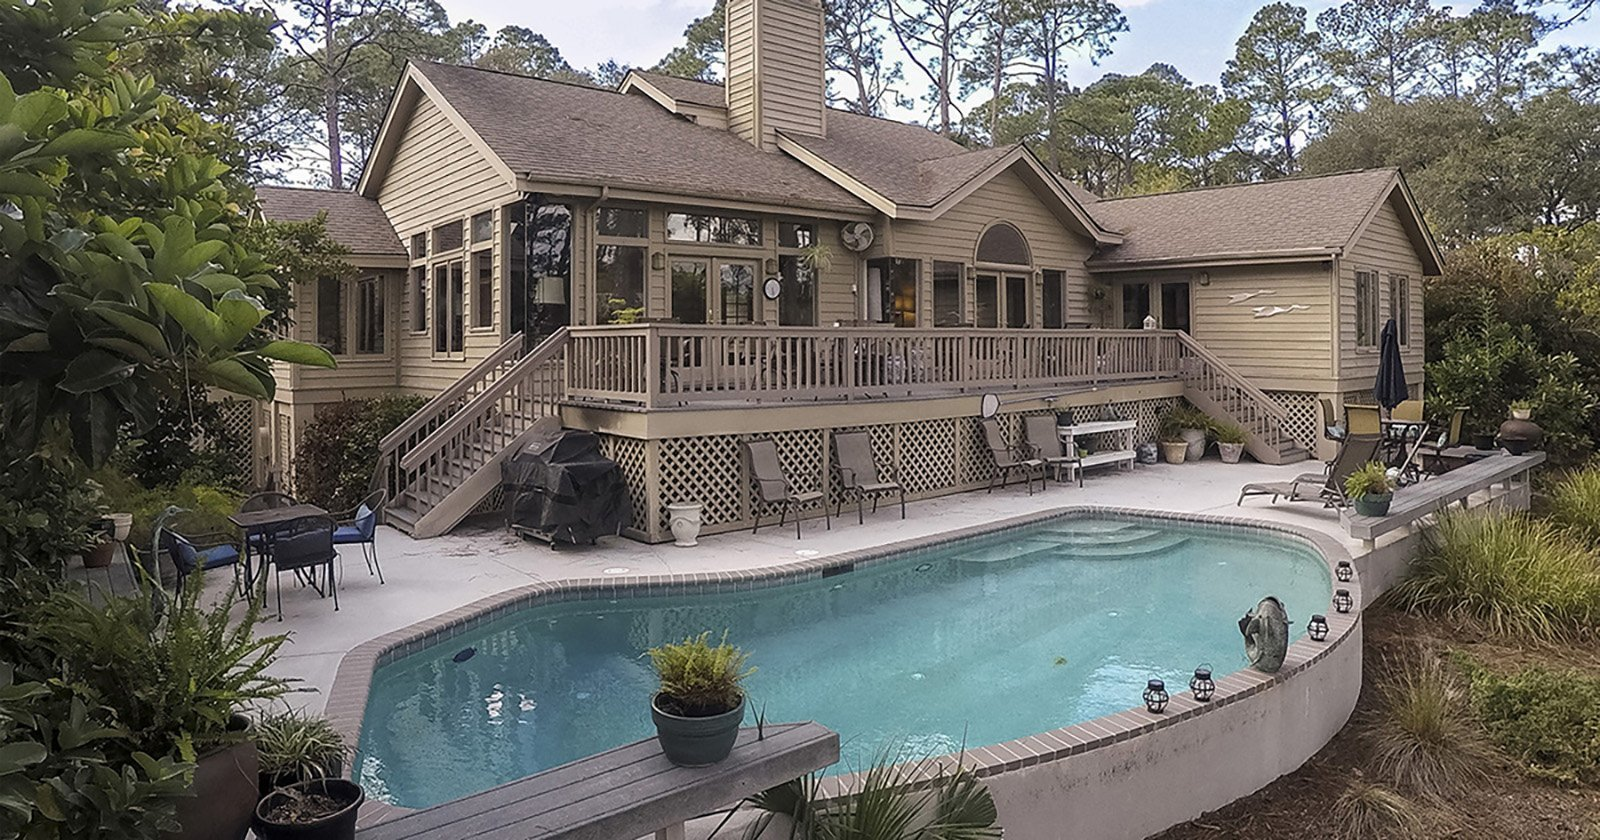 Sea Pines Home for Sale - 18 Audubon Pond Road, Sea Pines